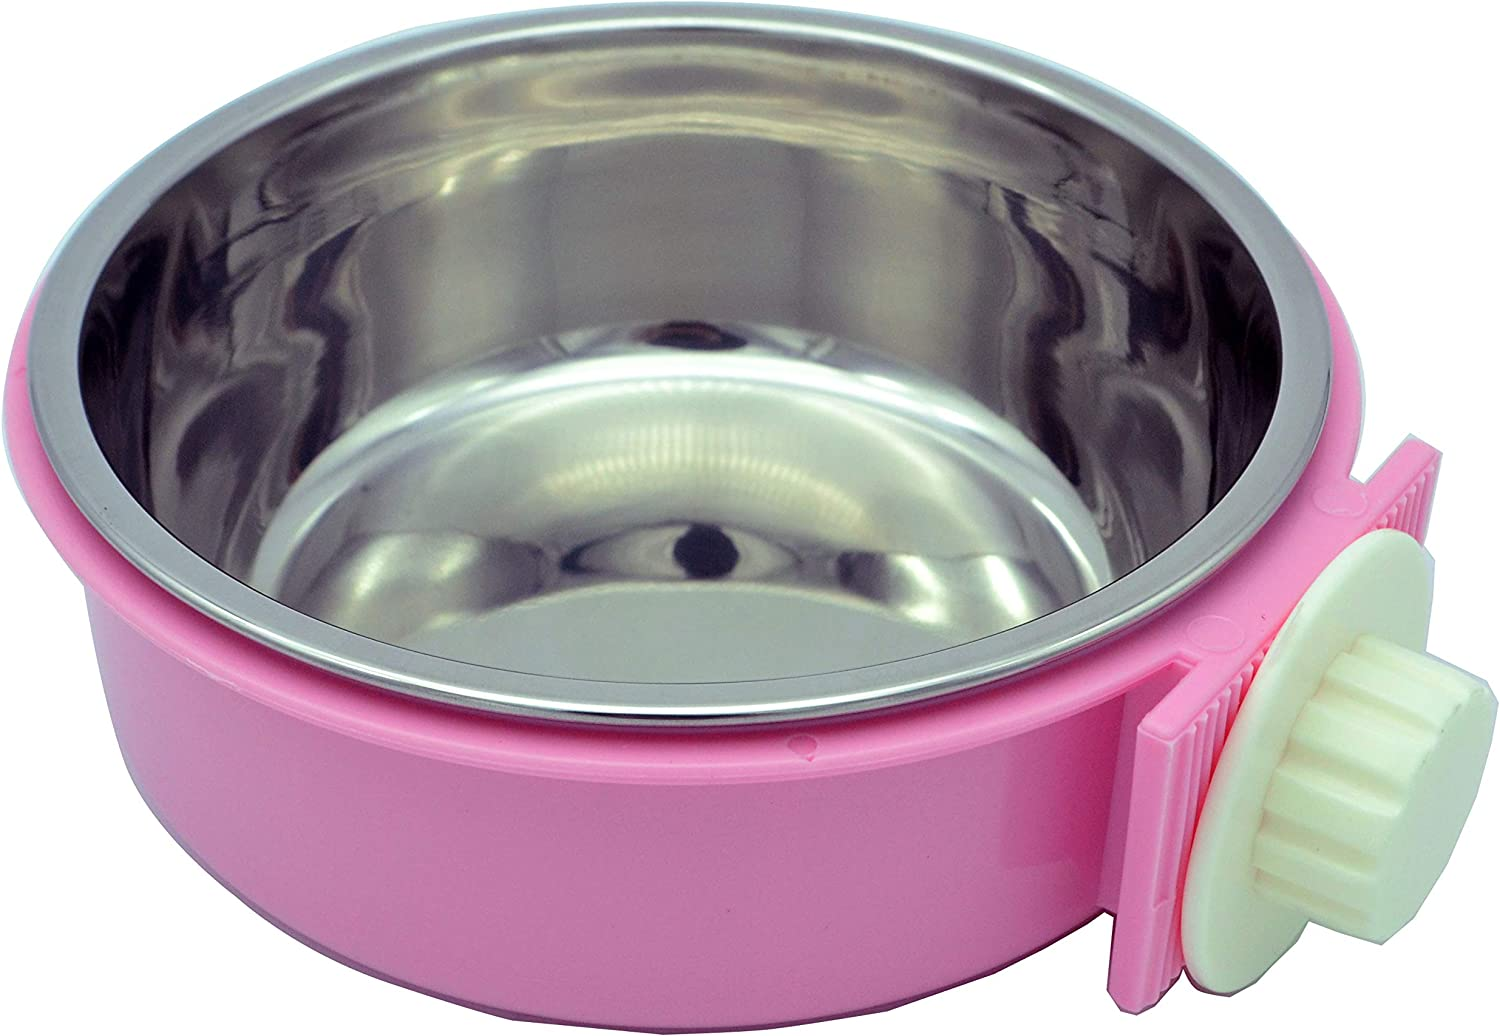 RUBYHOME Dog Bowl Feeder Pet Puppy Food Water Bowl, 2-in-1 Plastic Bowl & Stainless Steel Bowl, Removable Hanging Cat Rabbit Bird Food Basin Dish Perfect for Crates & Cages